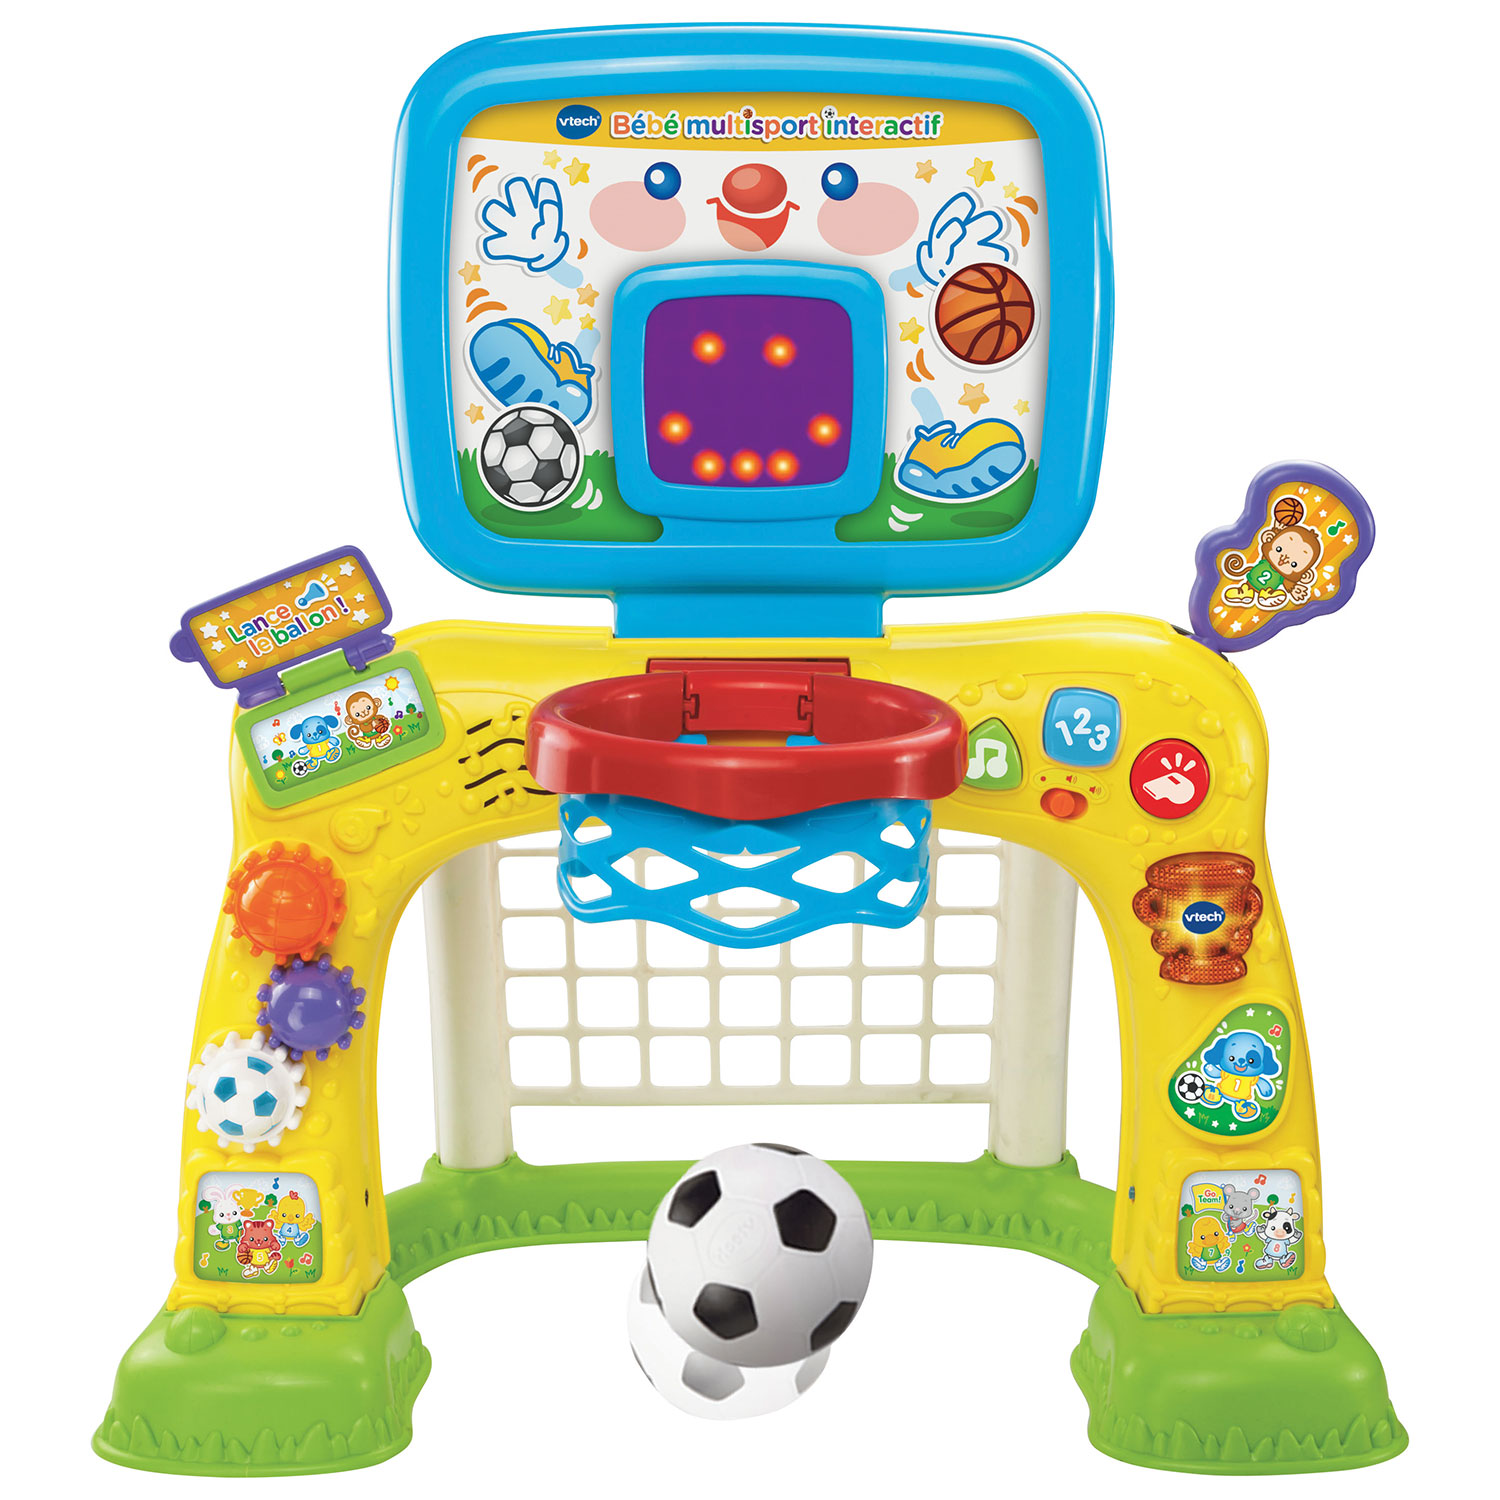 VTech Smart Shots Sports Center French Playgrounds